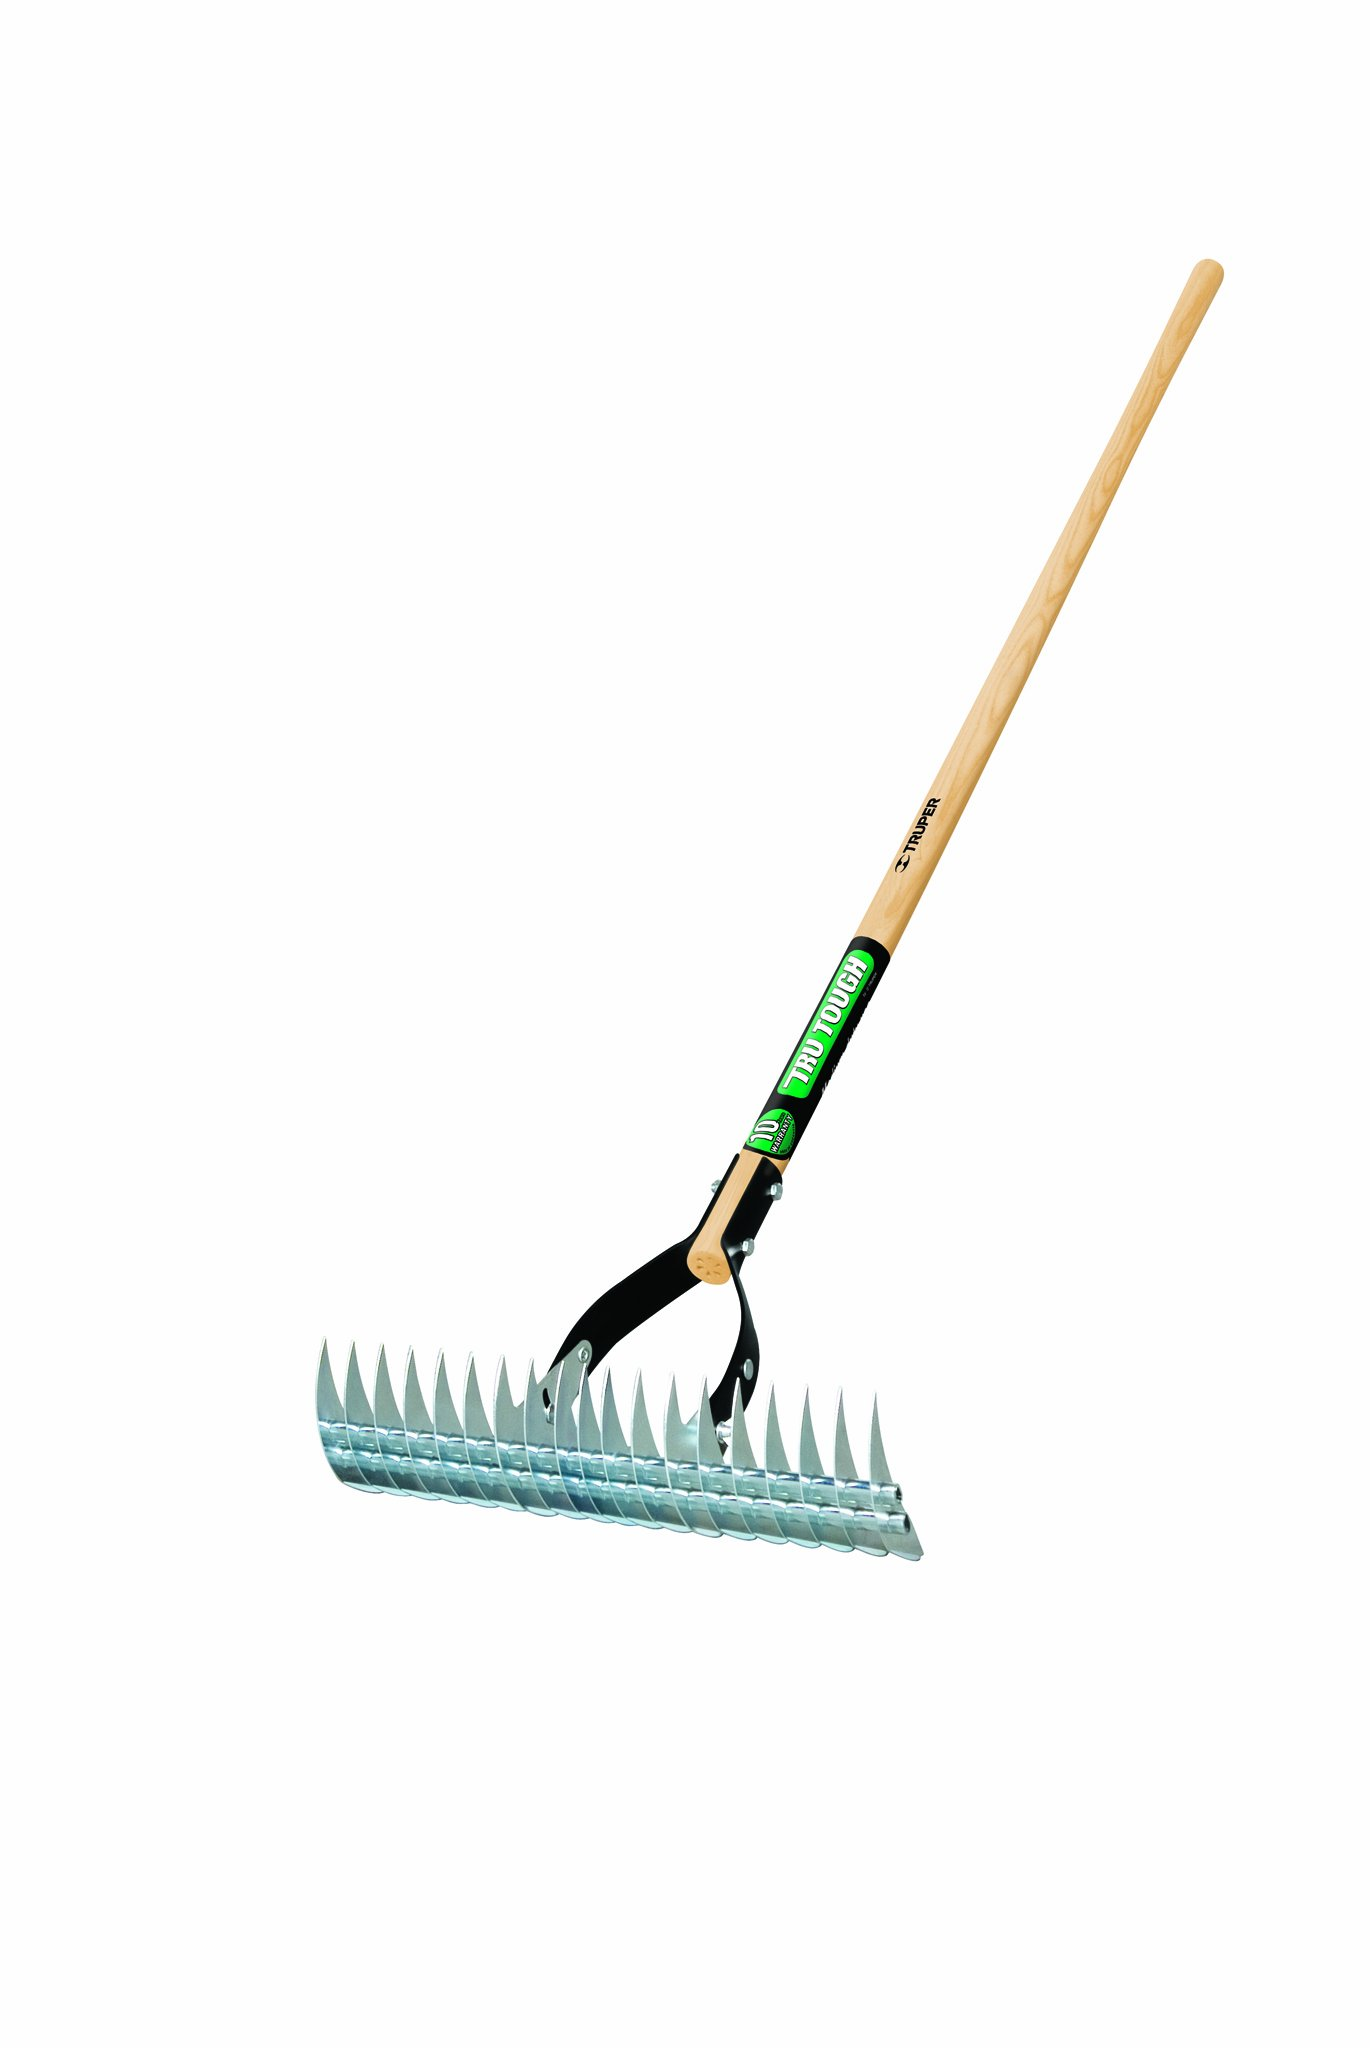 Truper 32120 Tru Tough Thatching Rake, Wood Handle, 54-Inch